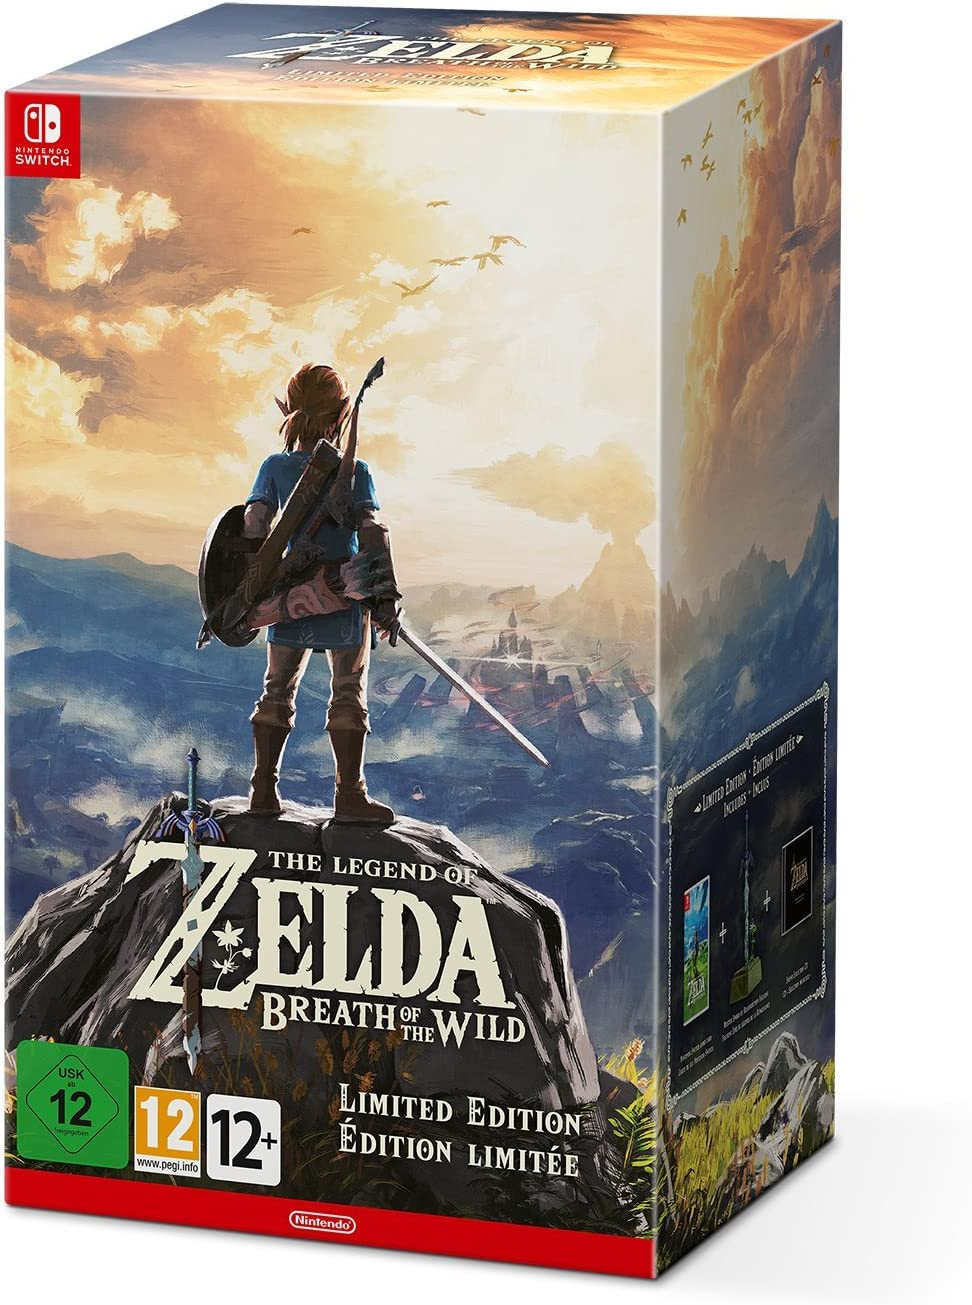 The Legend of Zelda : Breath of the Wild - Limited Edition: Amazon ...